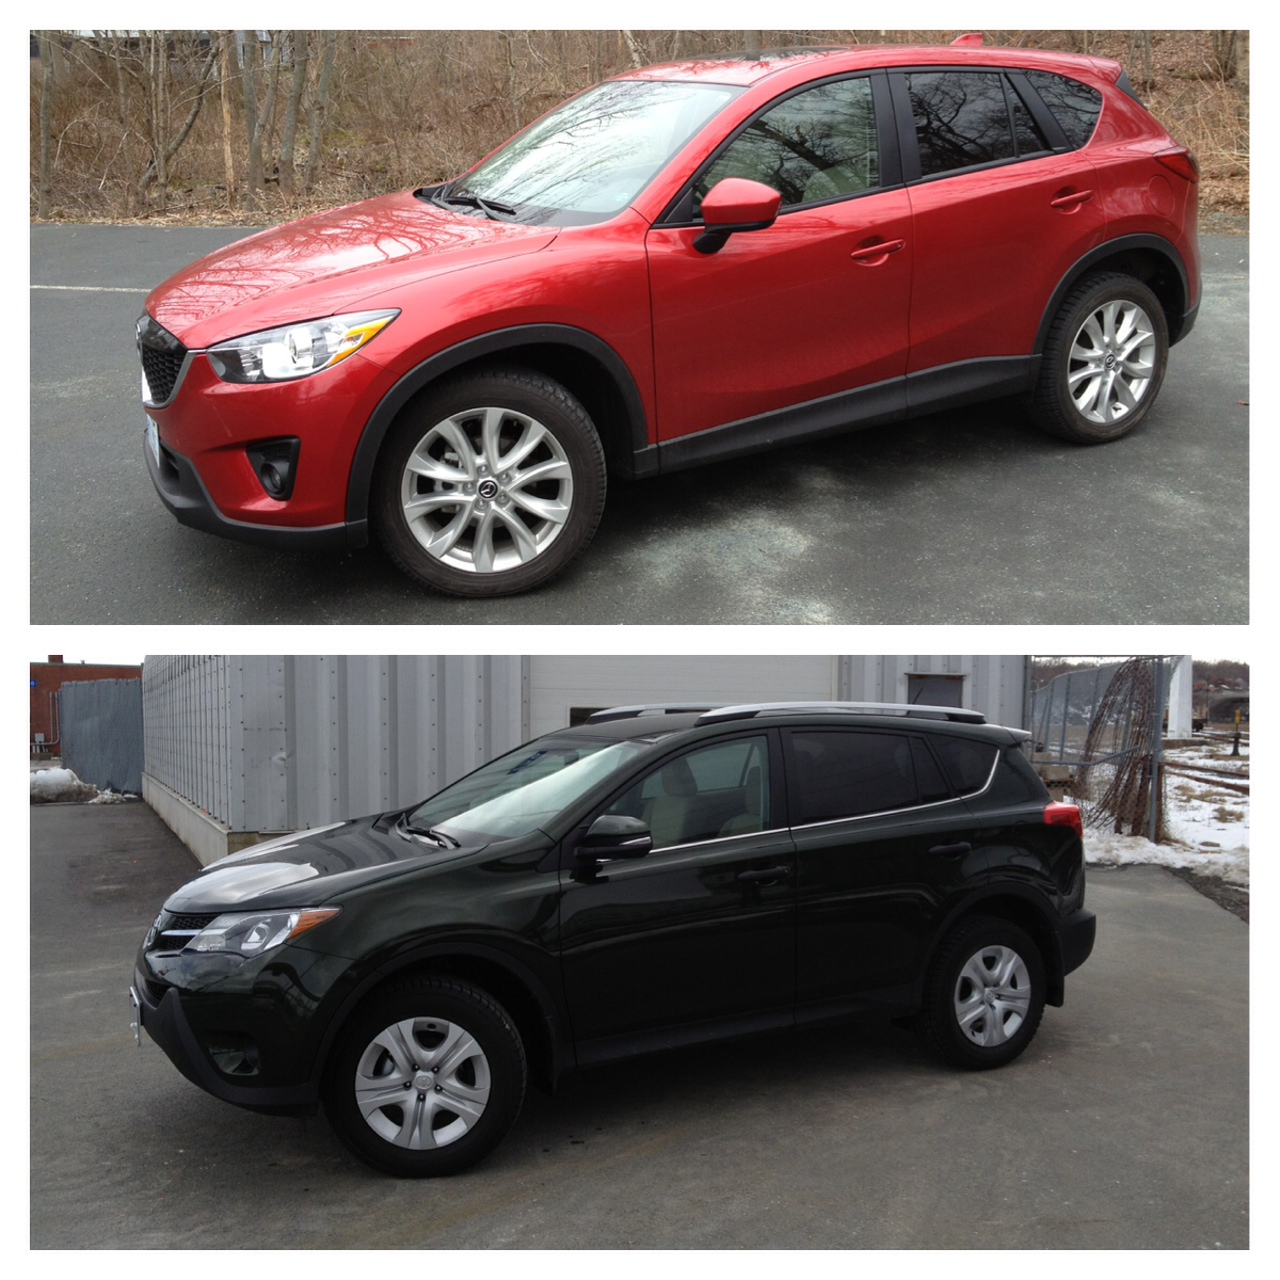 comparo 2014 mazda cx 5 gt skyactiv vs 2013 toyota rav4 le. Black Bedroom Furniture Sets. Home Design Ideas